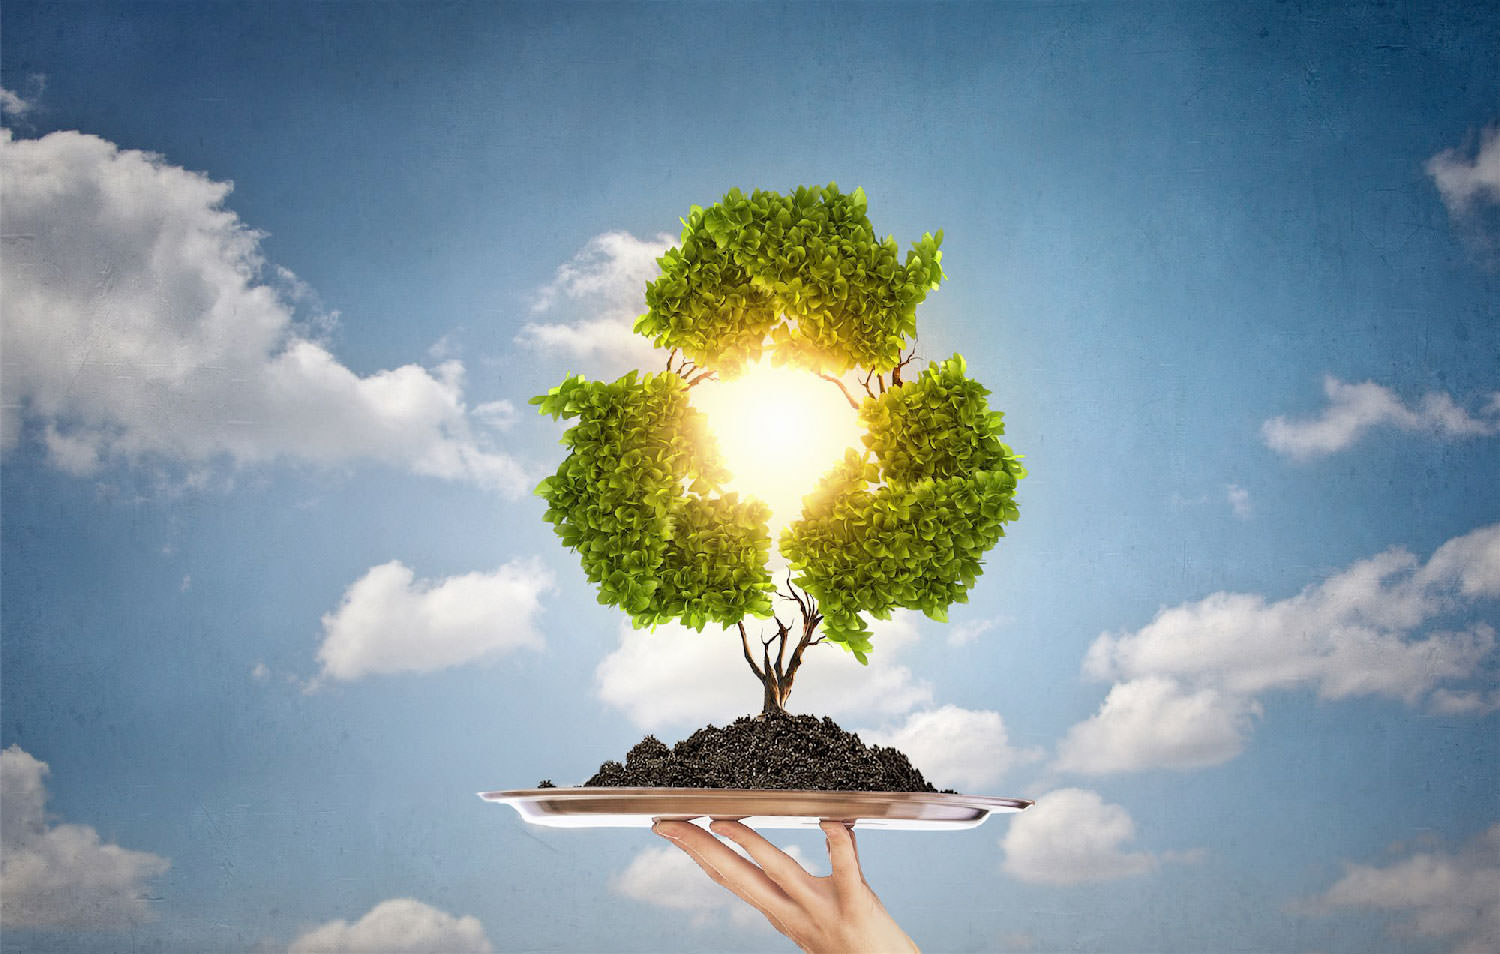 Demand for Bioplastics Continues to Follow Immense Growth Trajectory